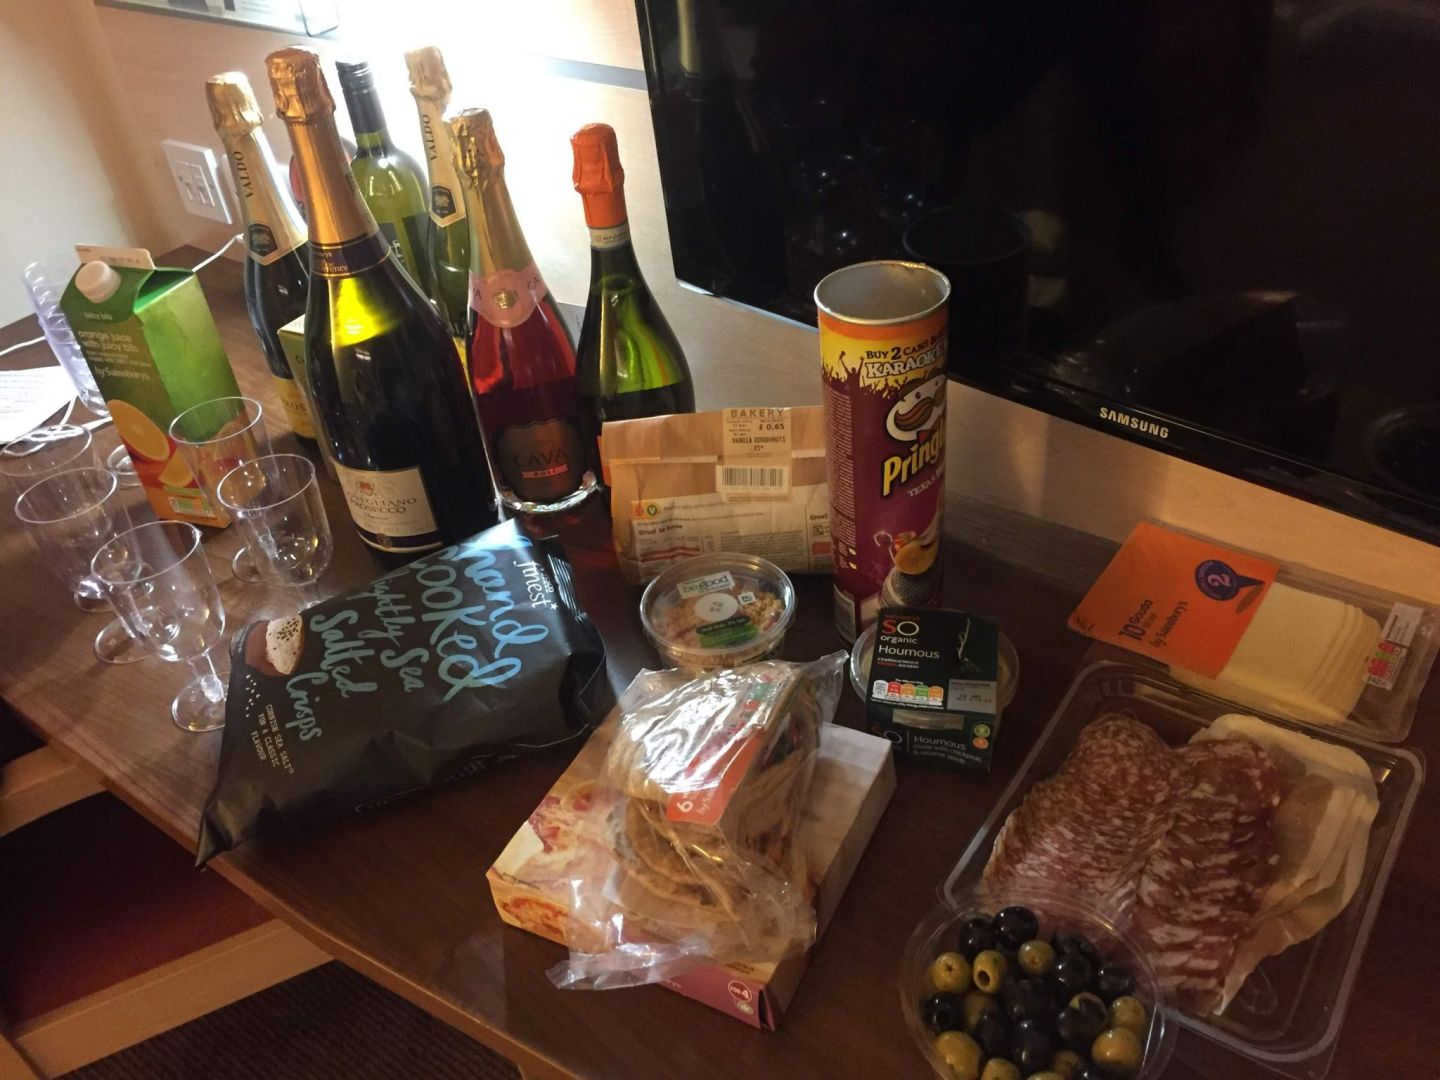 New Year's Eve snacks and prosecco in Cheltenham